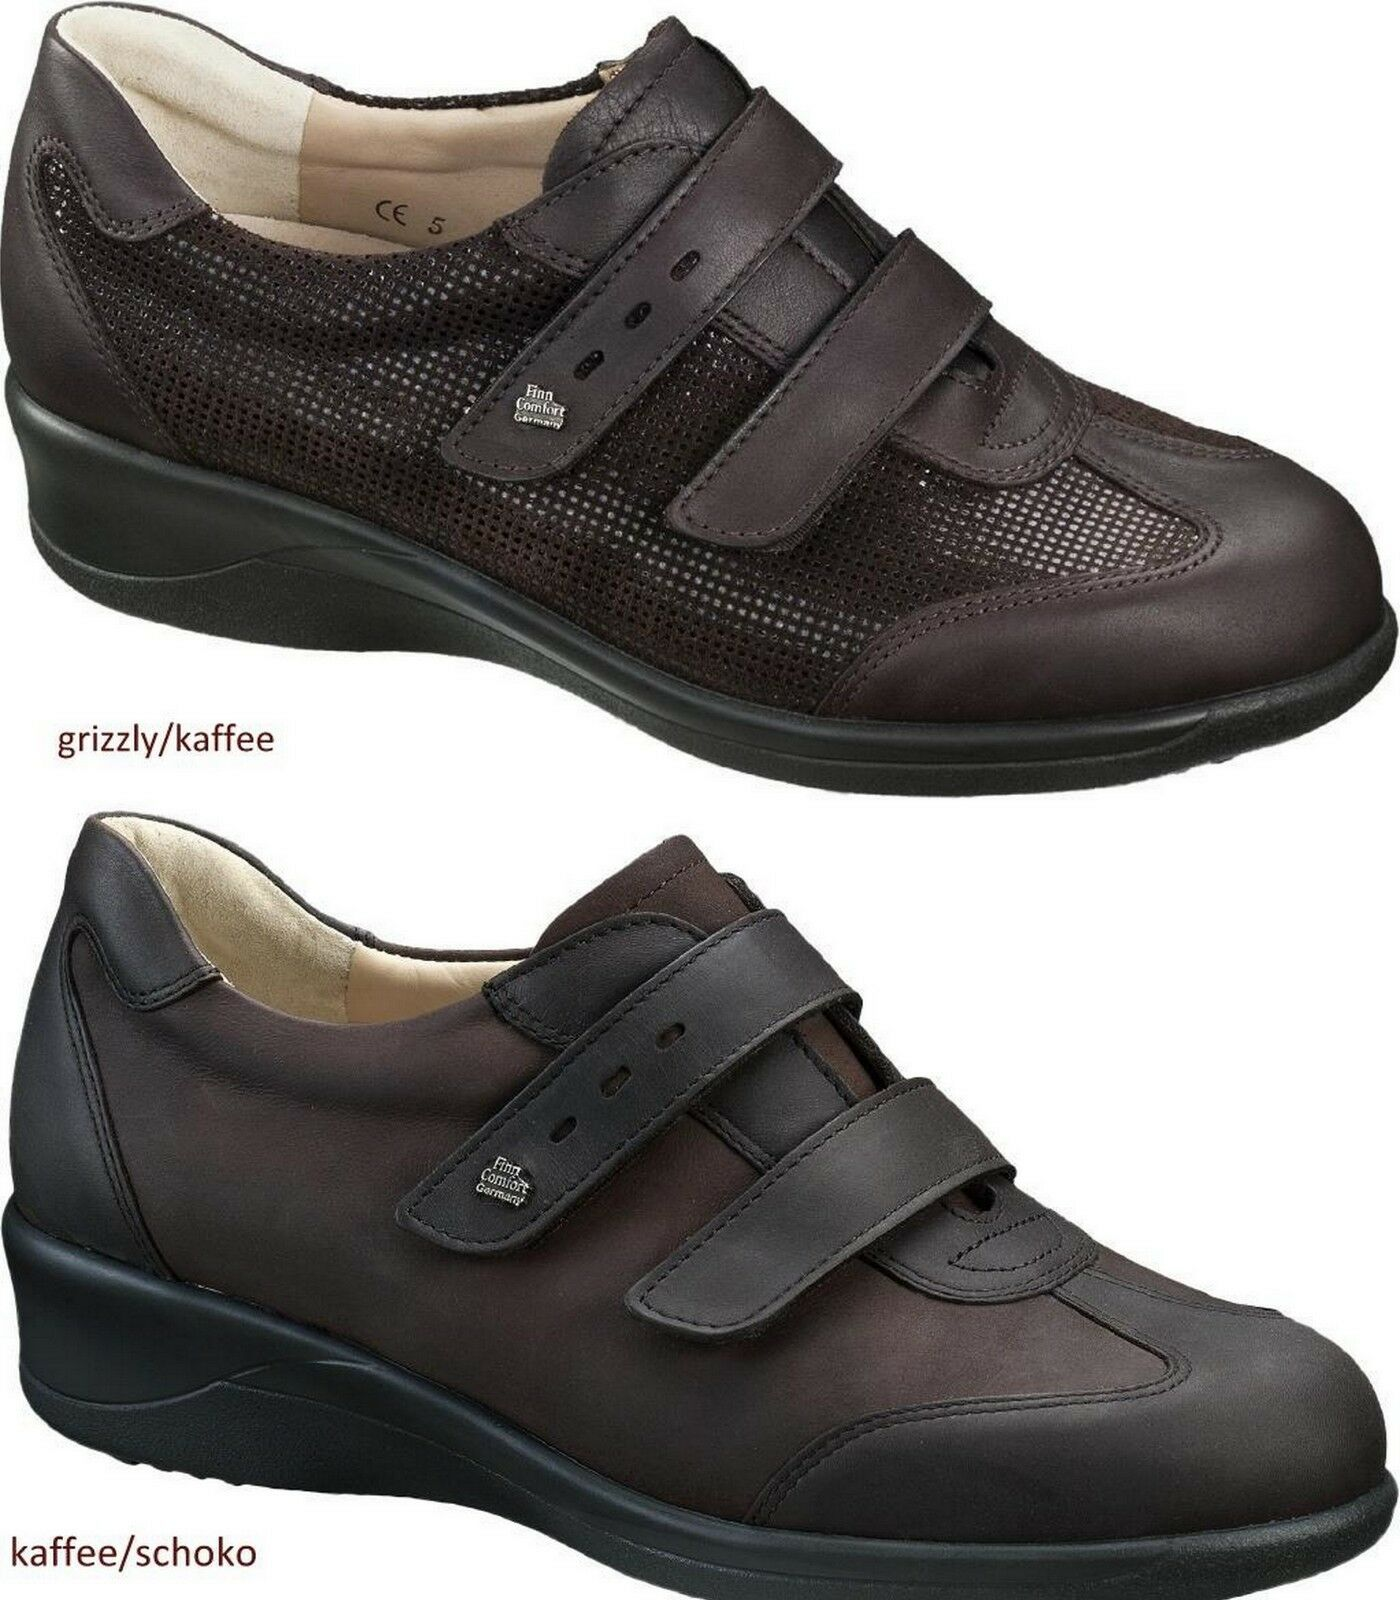 FINN COMFORT MESSINA SHOES LEATHER BROWN WOMEN'S LADY LADIES HOOK&LOOP BROWN LEATHER ROT GREY b7b9e2